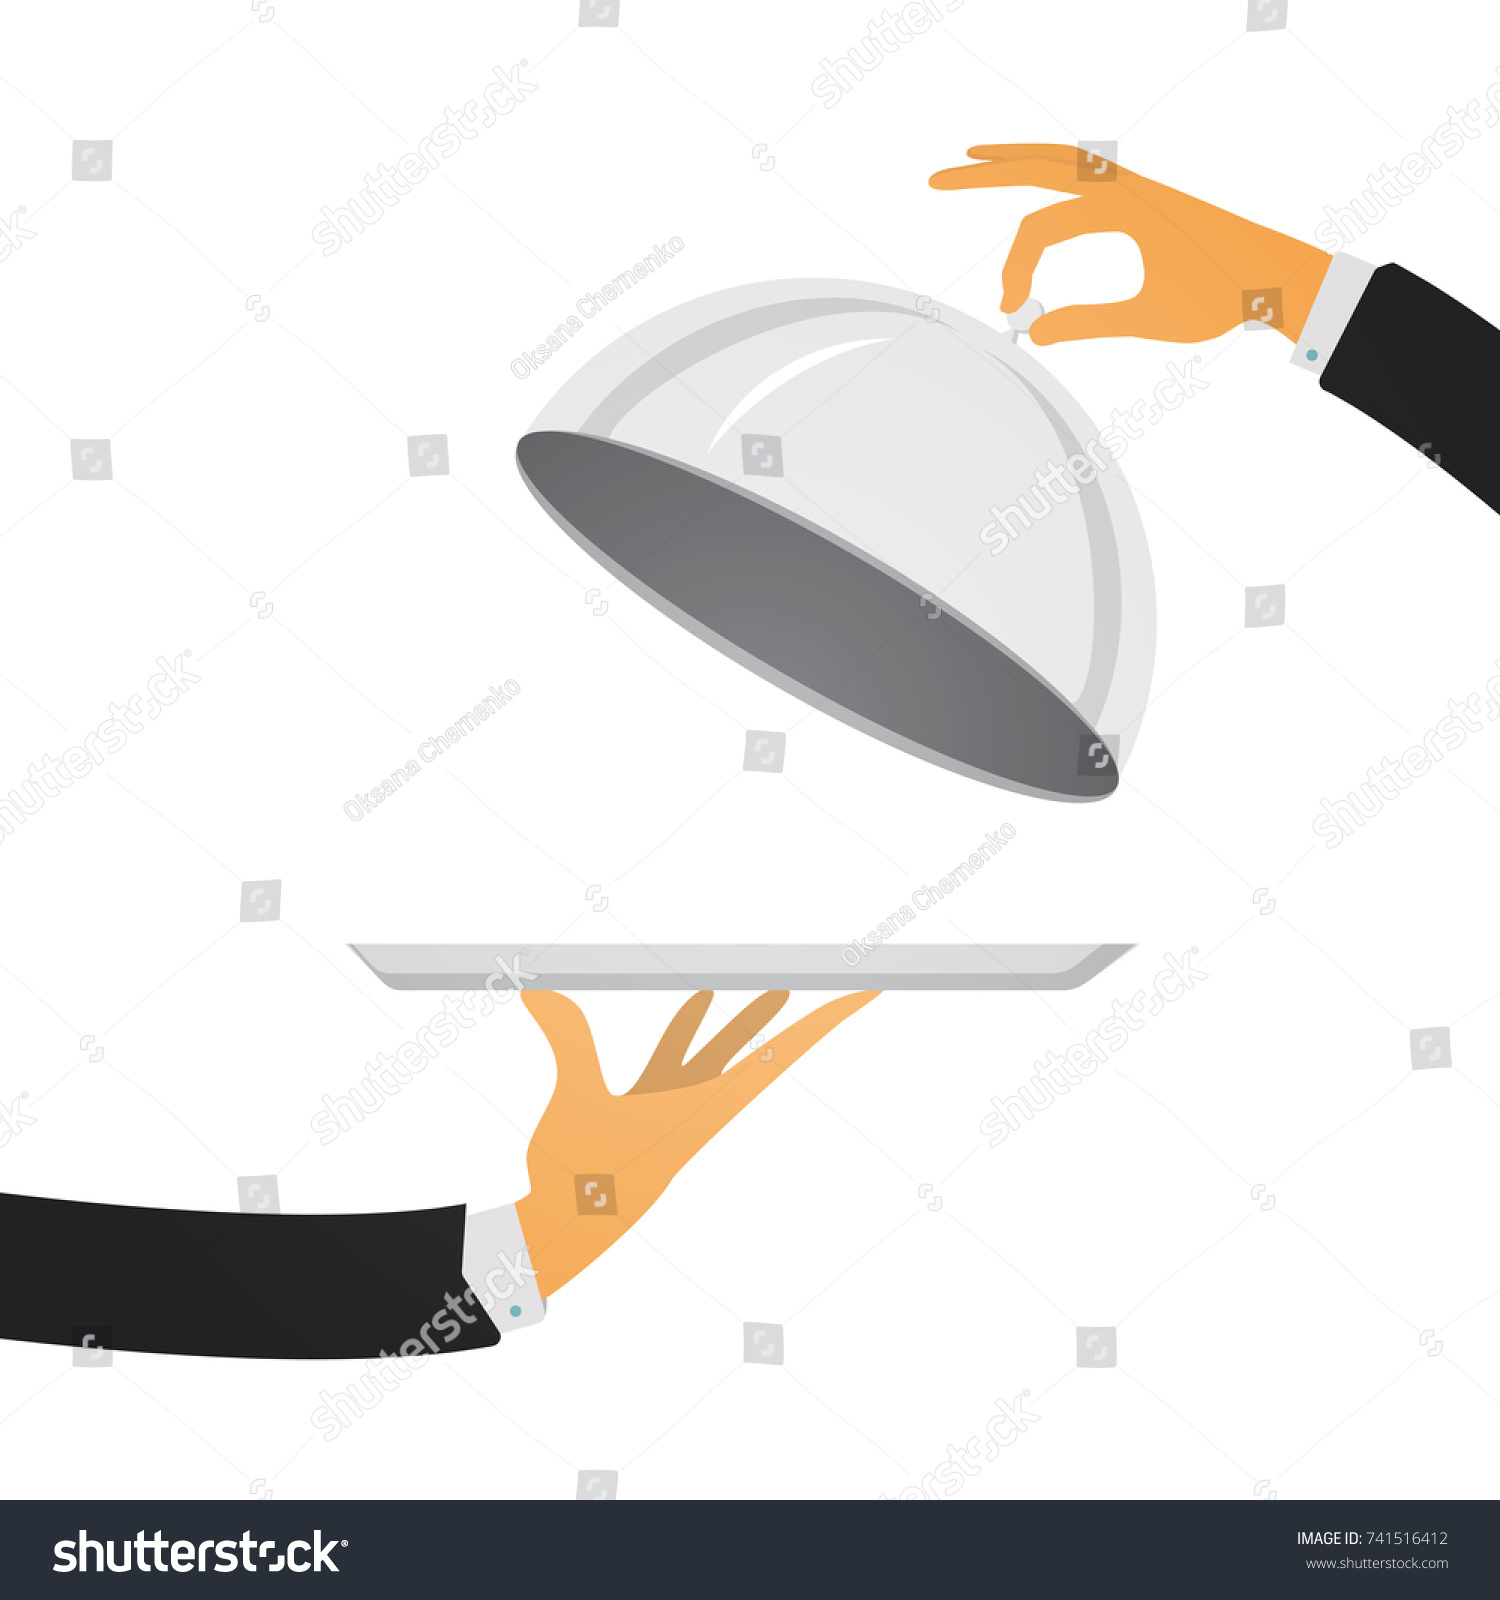 Silver cloche in hand. Restaurant plate in elegant waiter hand. Food serving tray. Vector illustration in modern flat style.